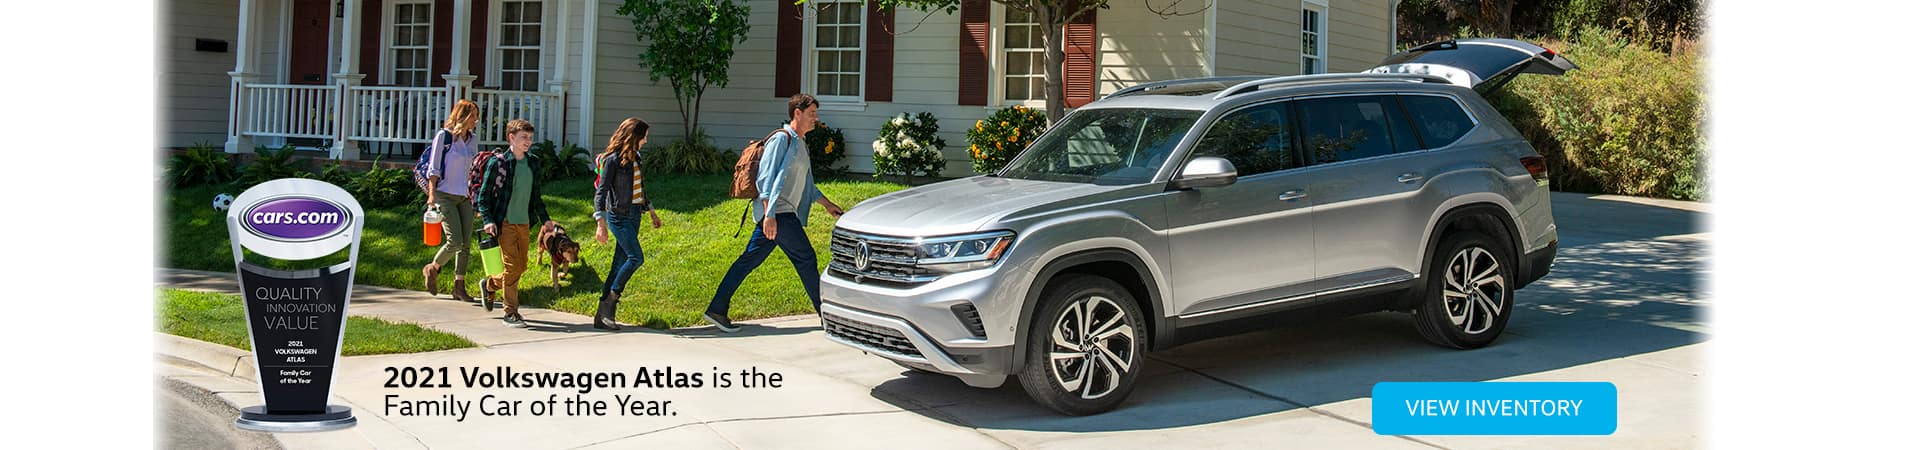 2021 Volkswagen Atlas is the Family Car of the Year